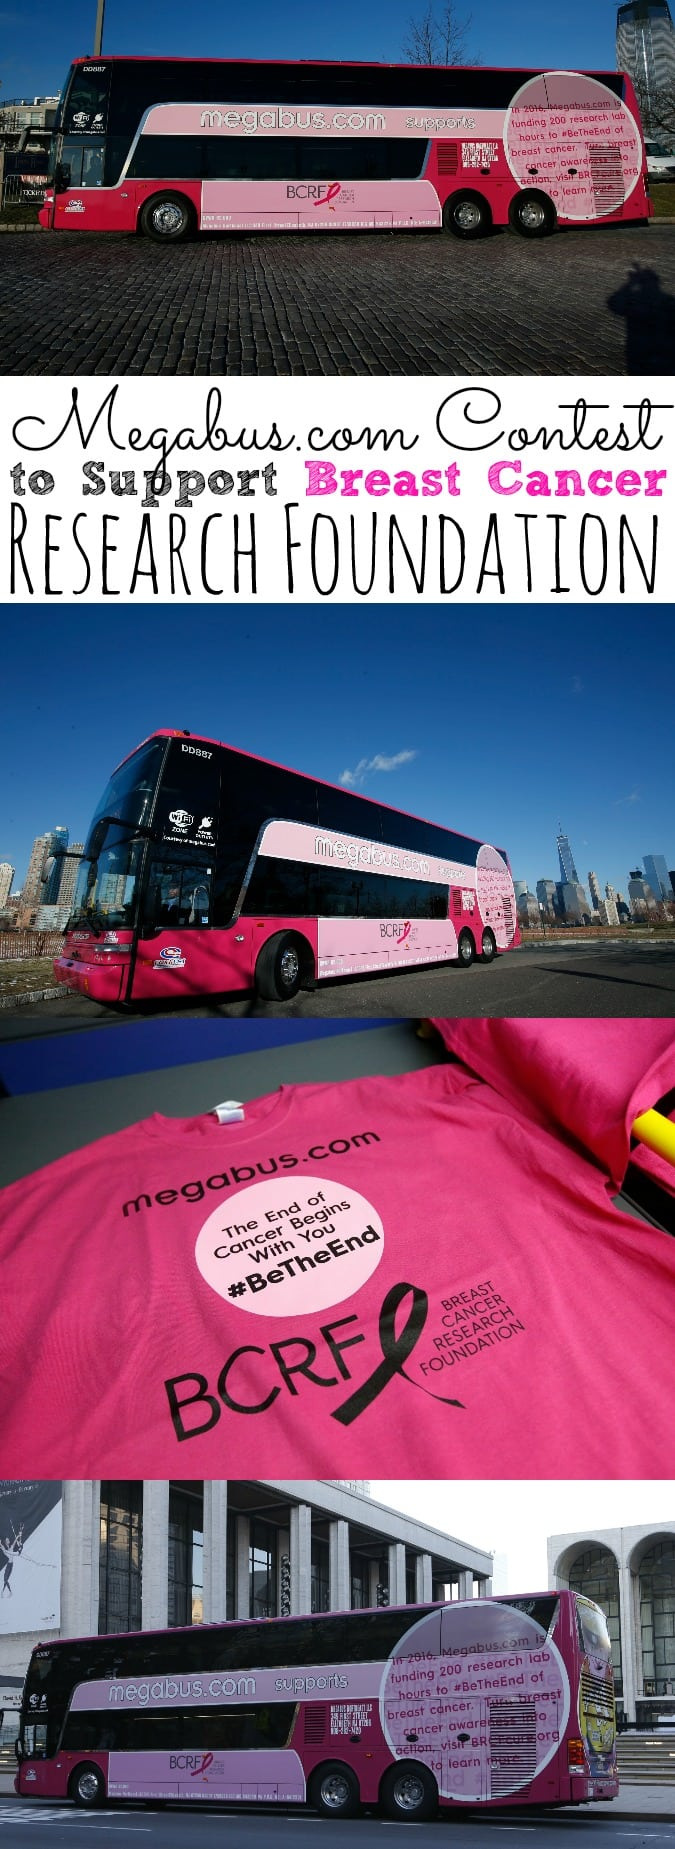 Megabus.com Contest To Support Breast Cancer Research Foundation - simplytodaylife.com